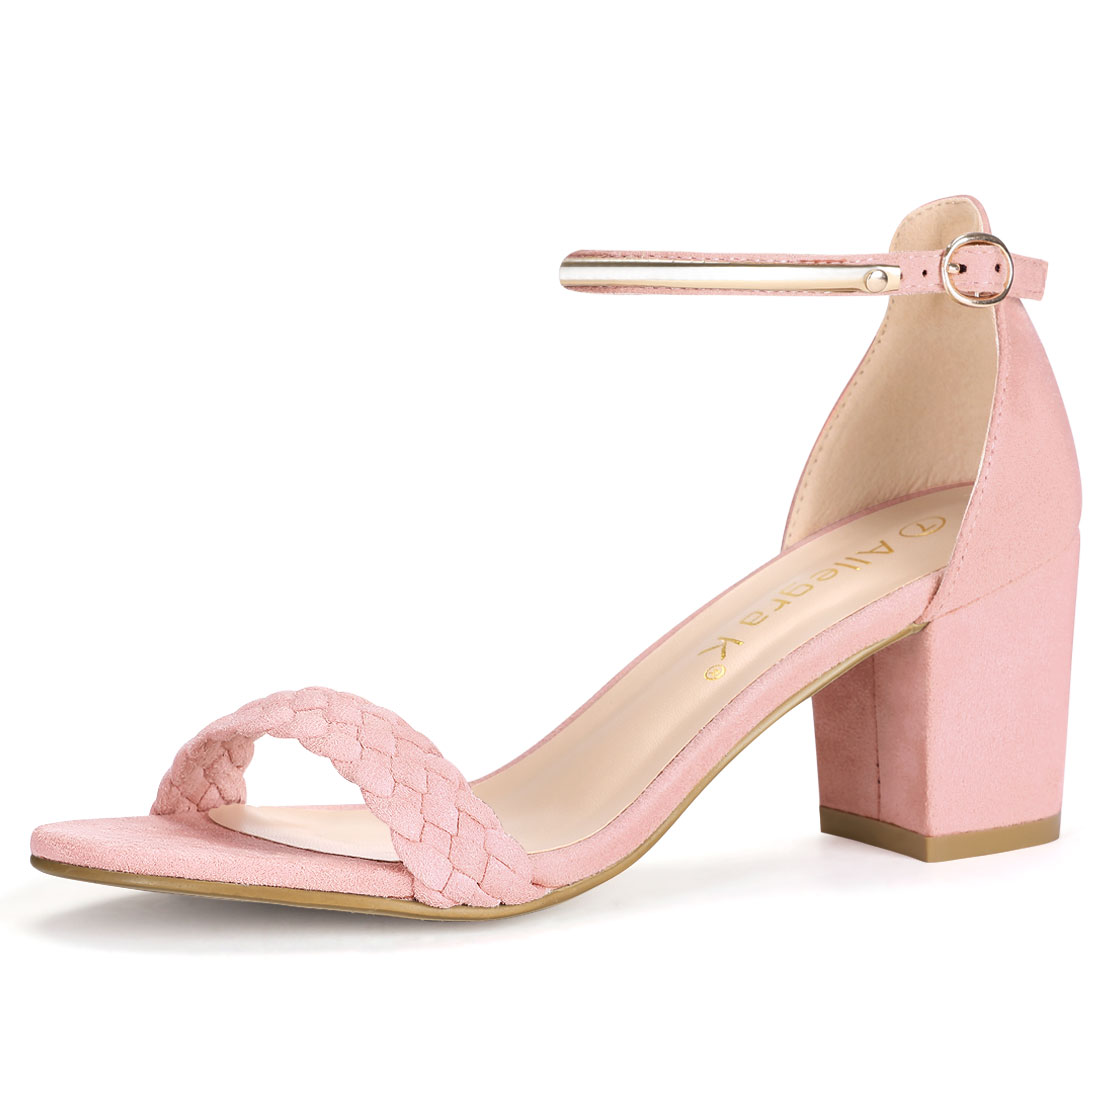 Women Open Toe Mid Heel Braided Ankle Strap Sandals Pink US 9